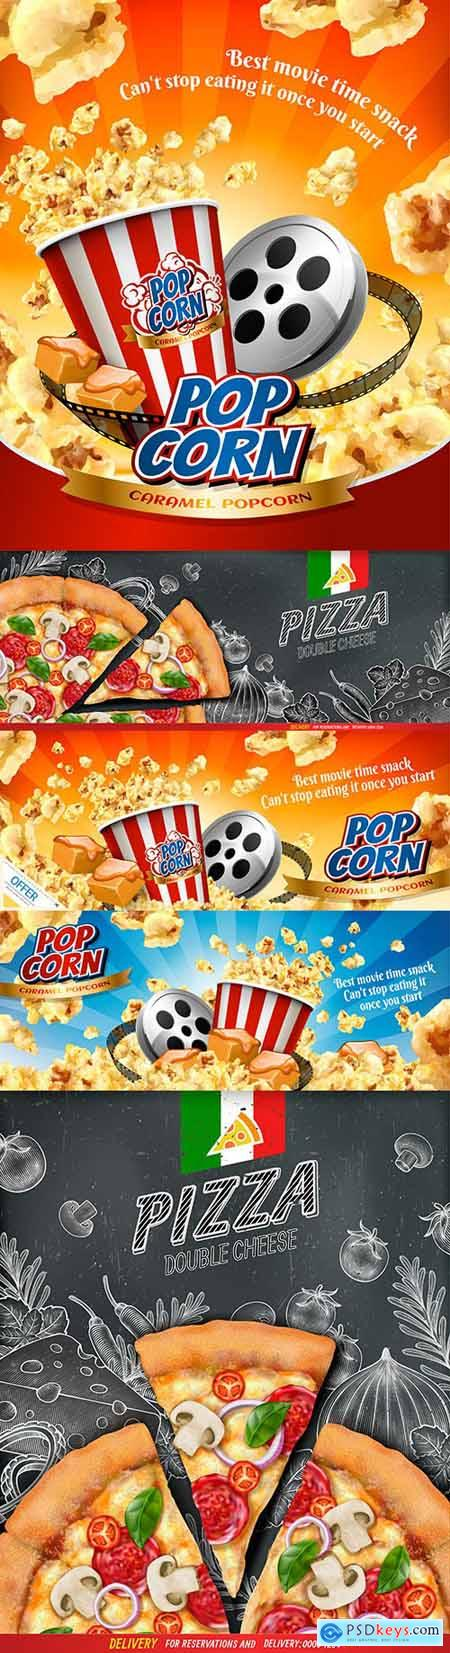 Poster with popcorn and pizza banner food advertisement